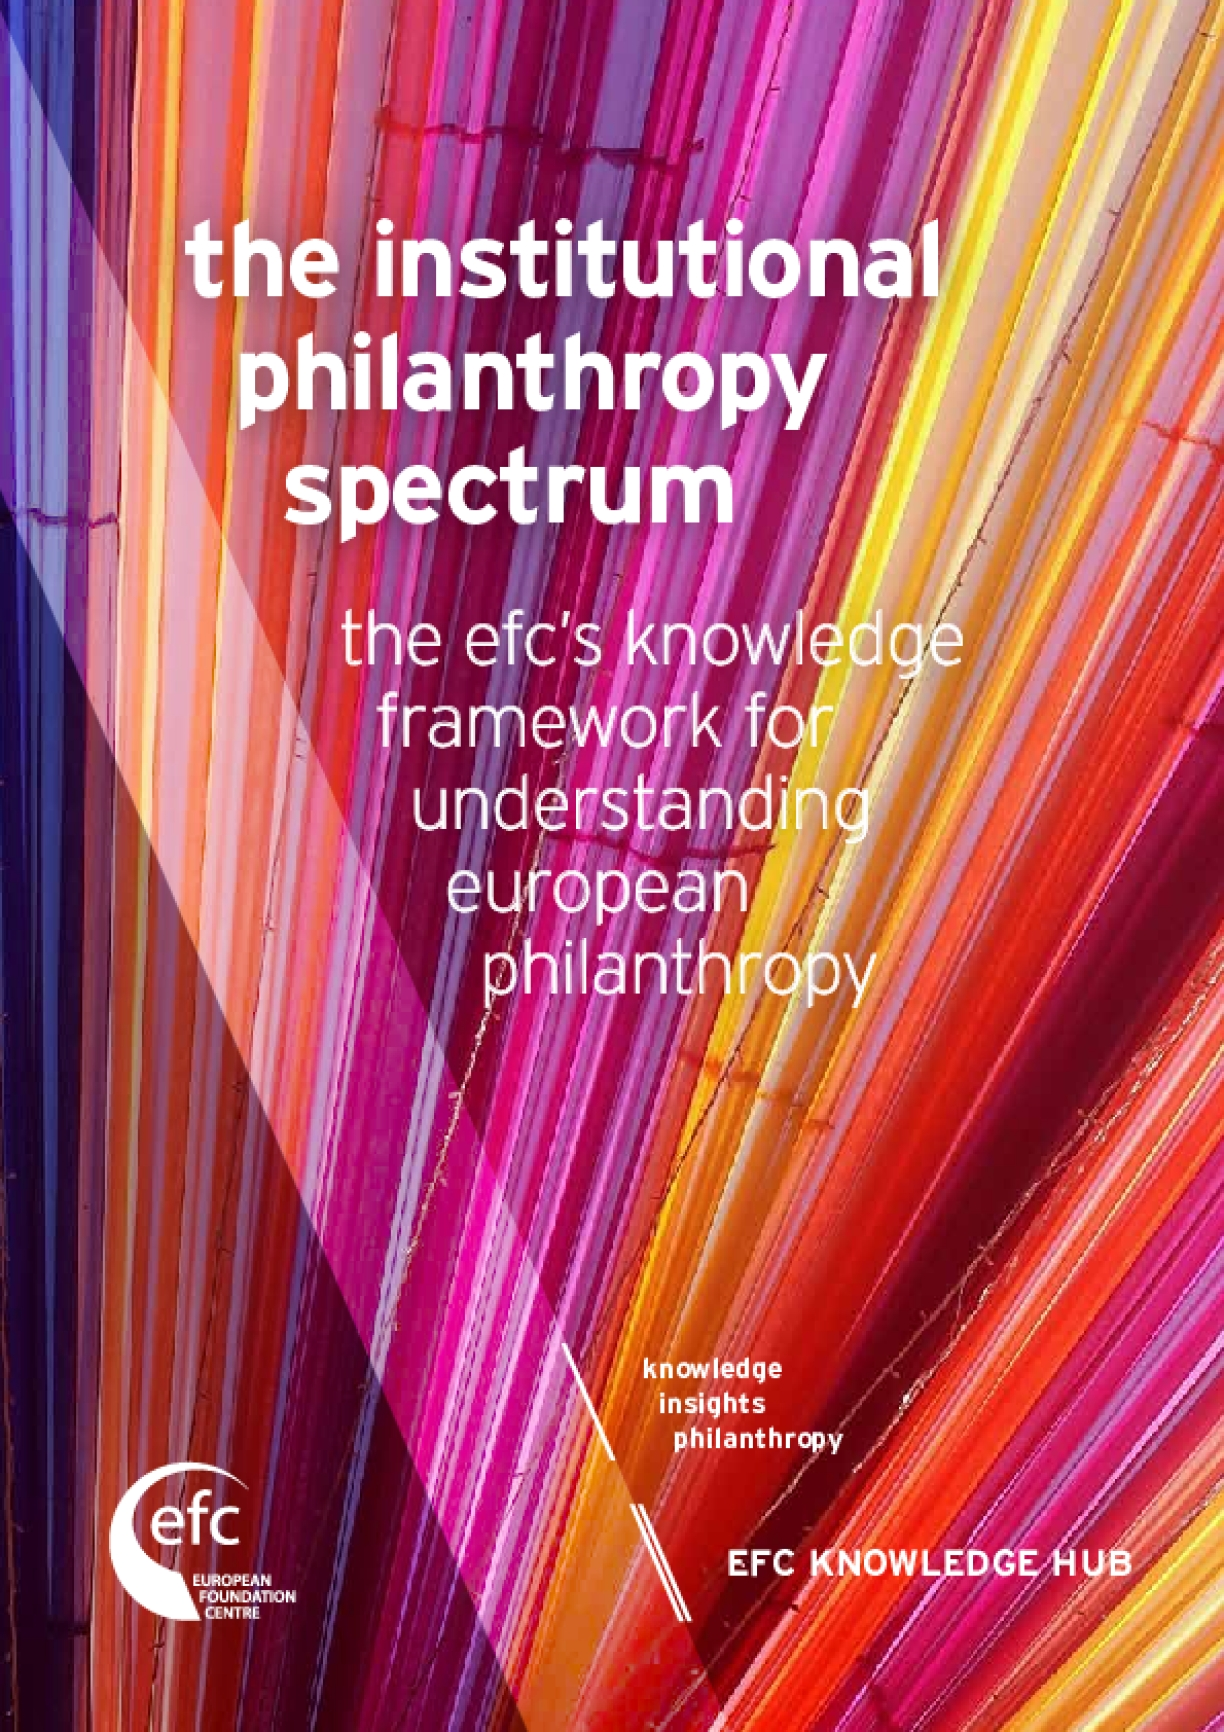 The Institutional Philanthropy Spectrum: the EFC's Knowledge Framework for Understanding European Philanthropy